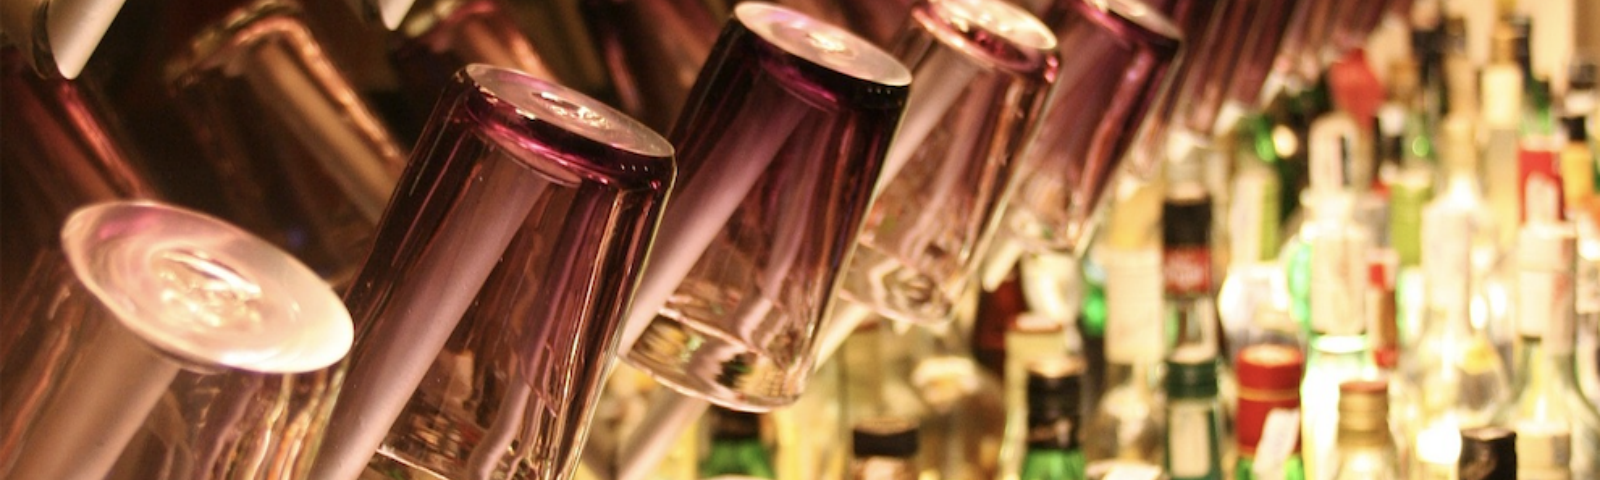 Rows of purple glasses hanging off the wall of a bar, with many liquor bottles below them.